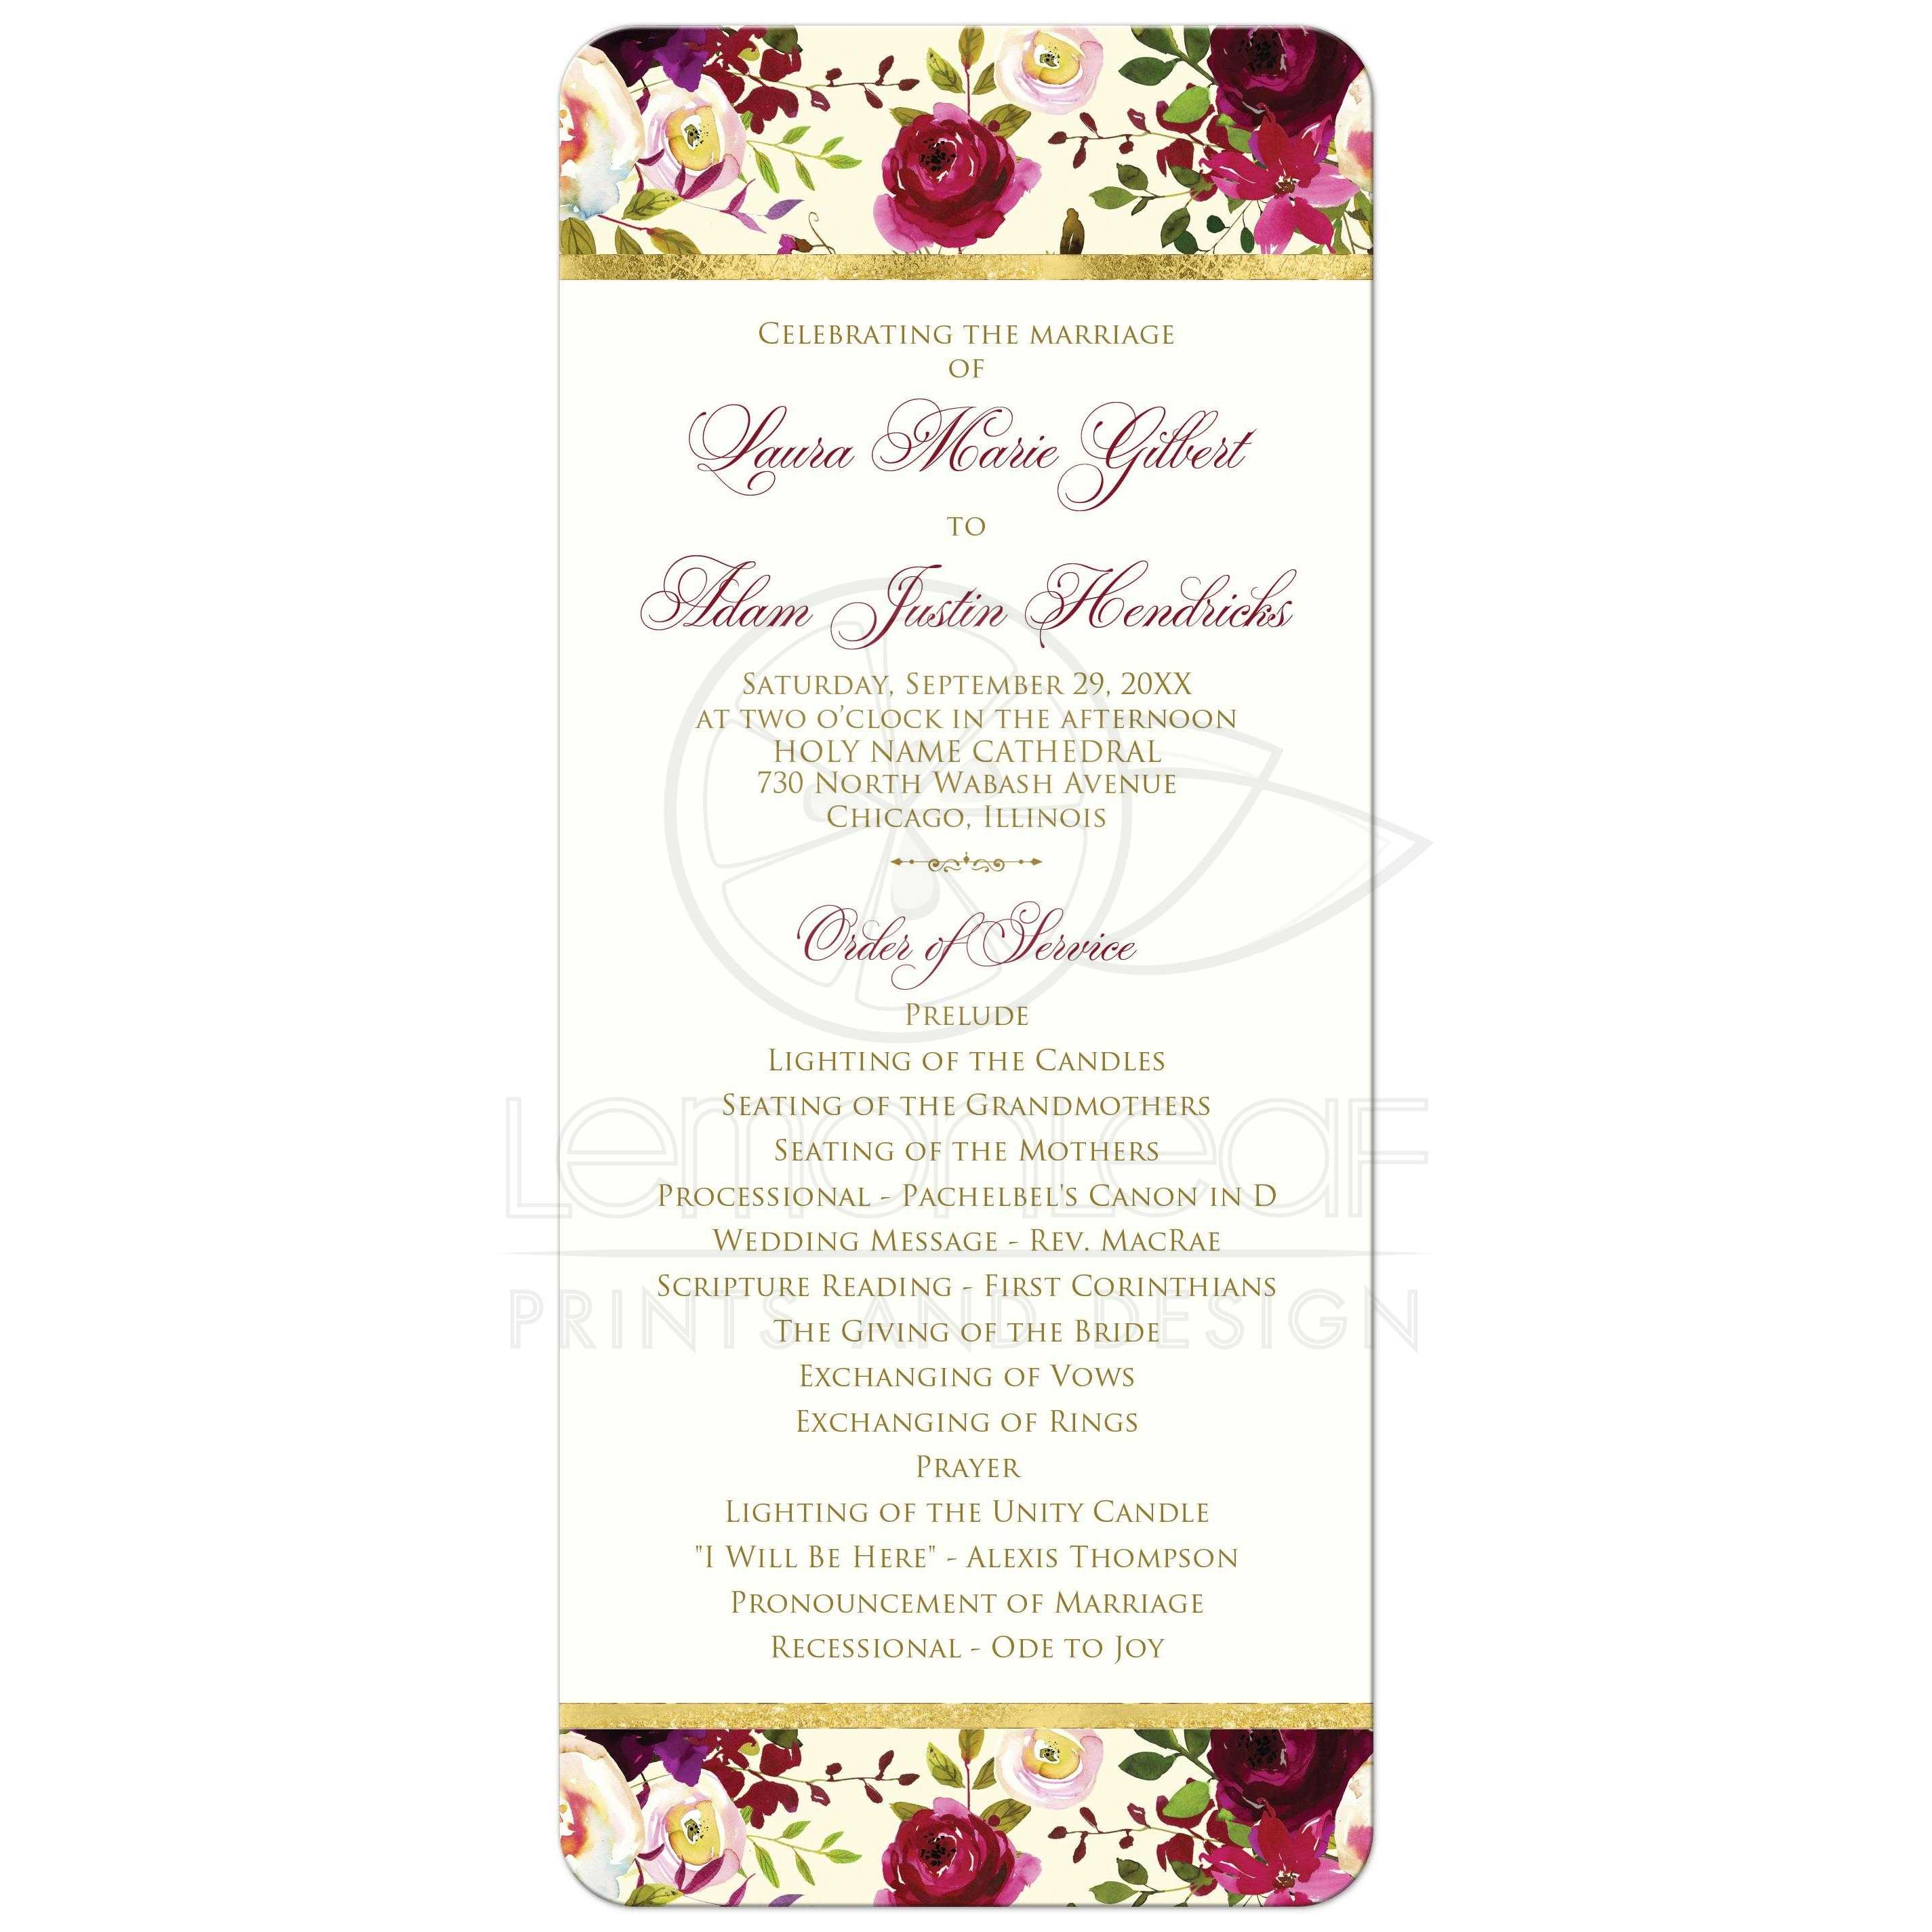 Floral Wedding Program | Burgundy Watercolor Flowers, Feathers ...